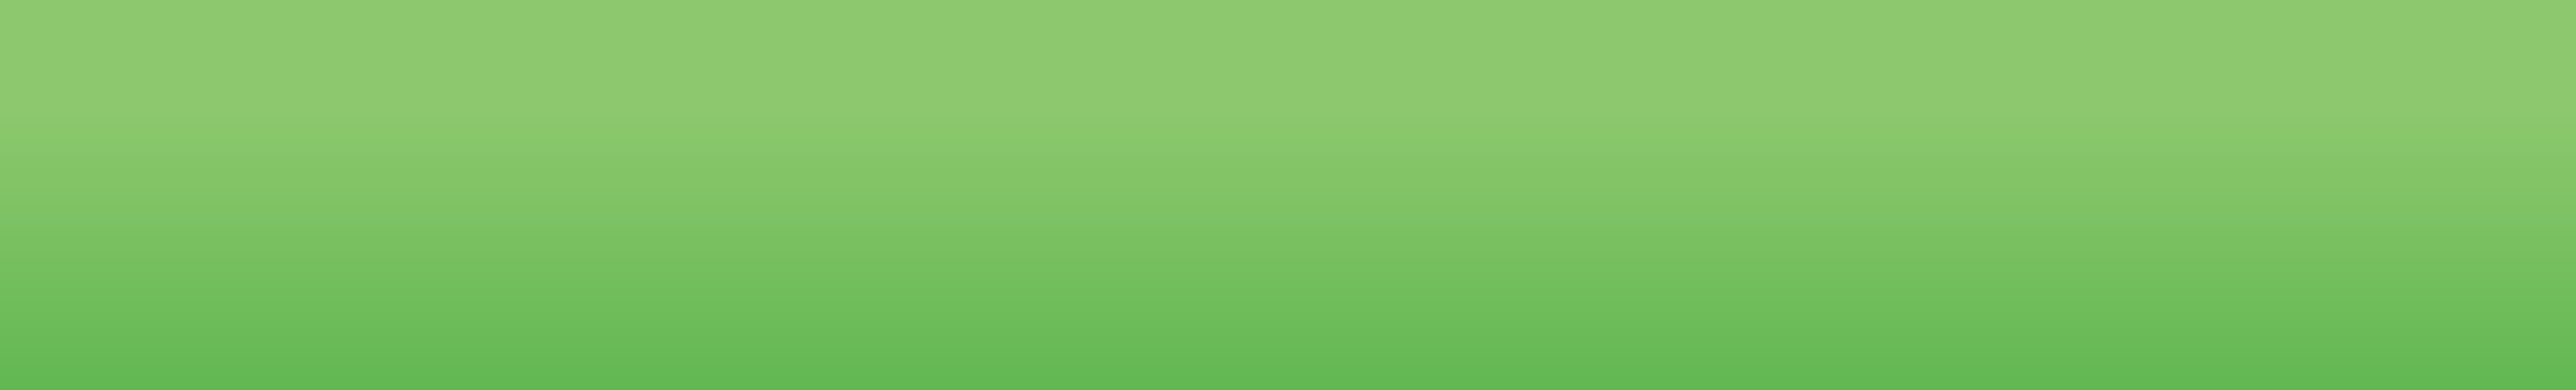 green_banner-05.png